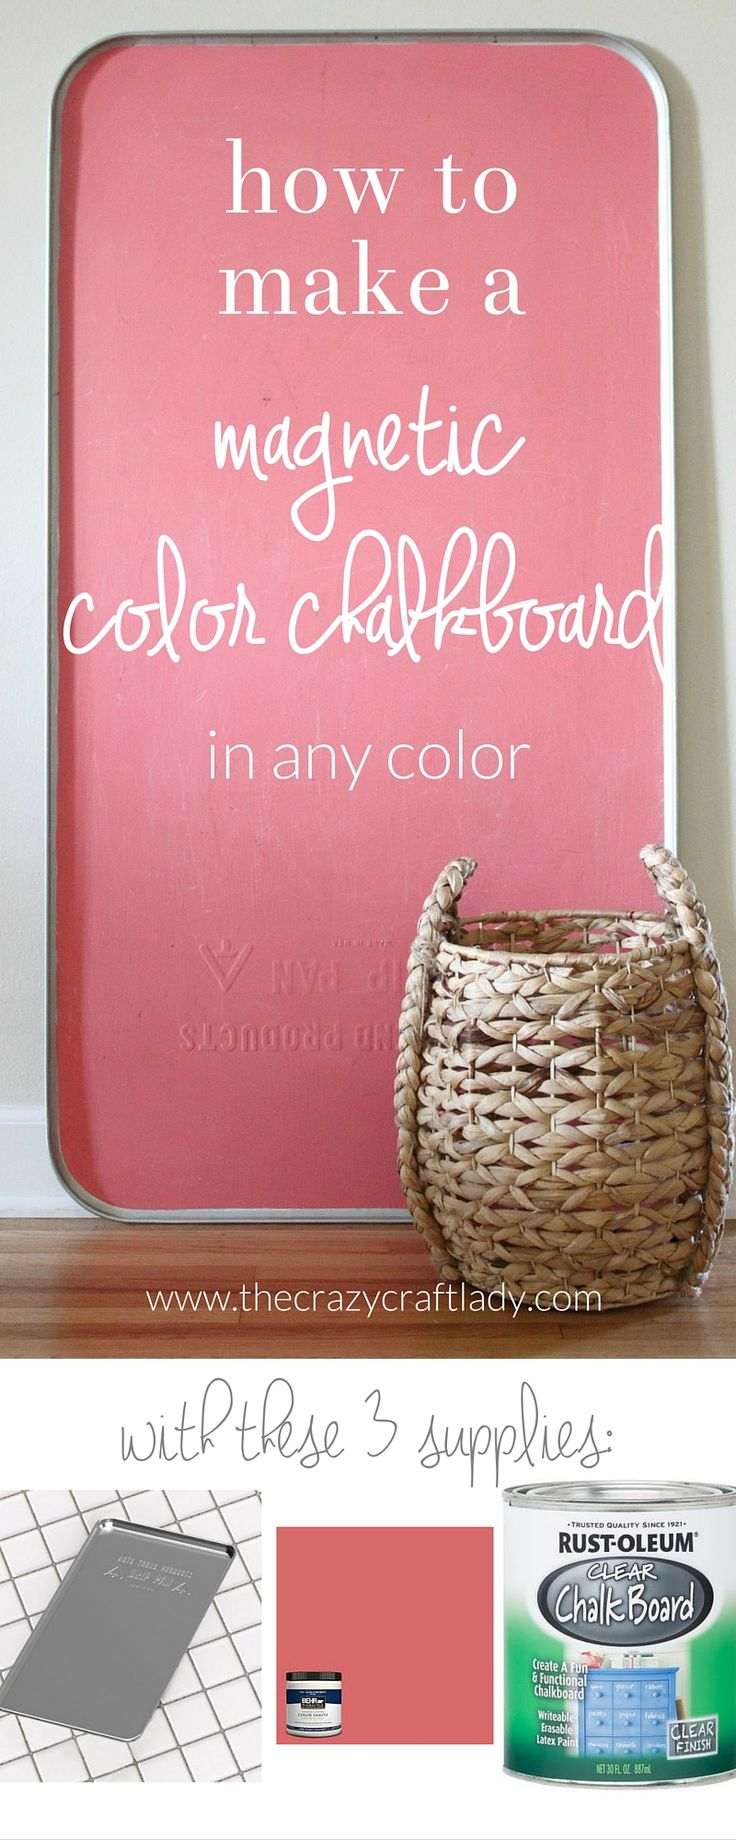 How to make a magnetic color chalkboard - with colored chalkboard paint in any color